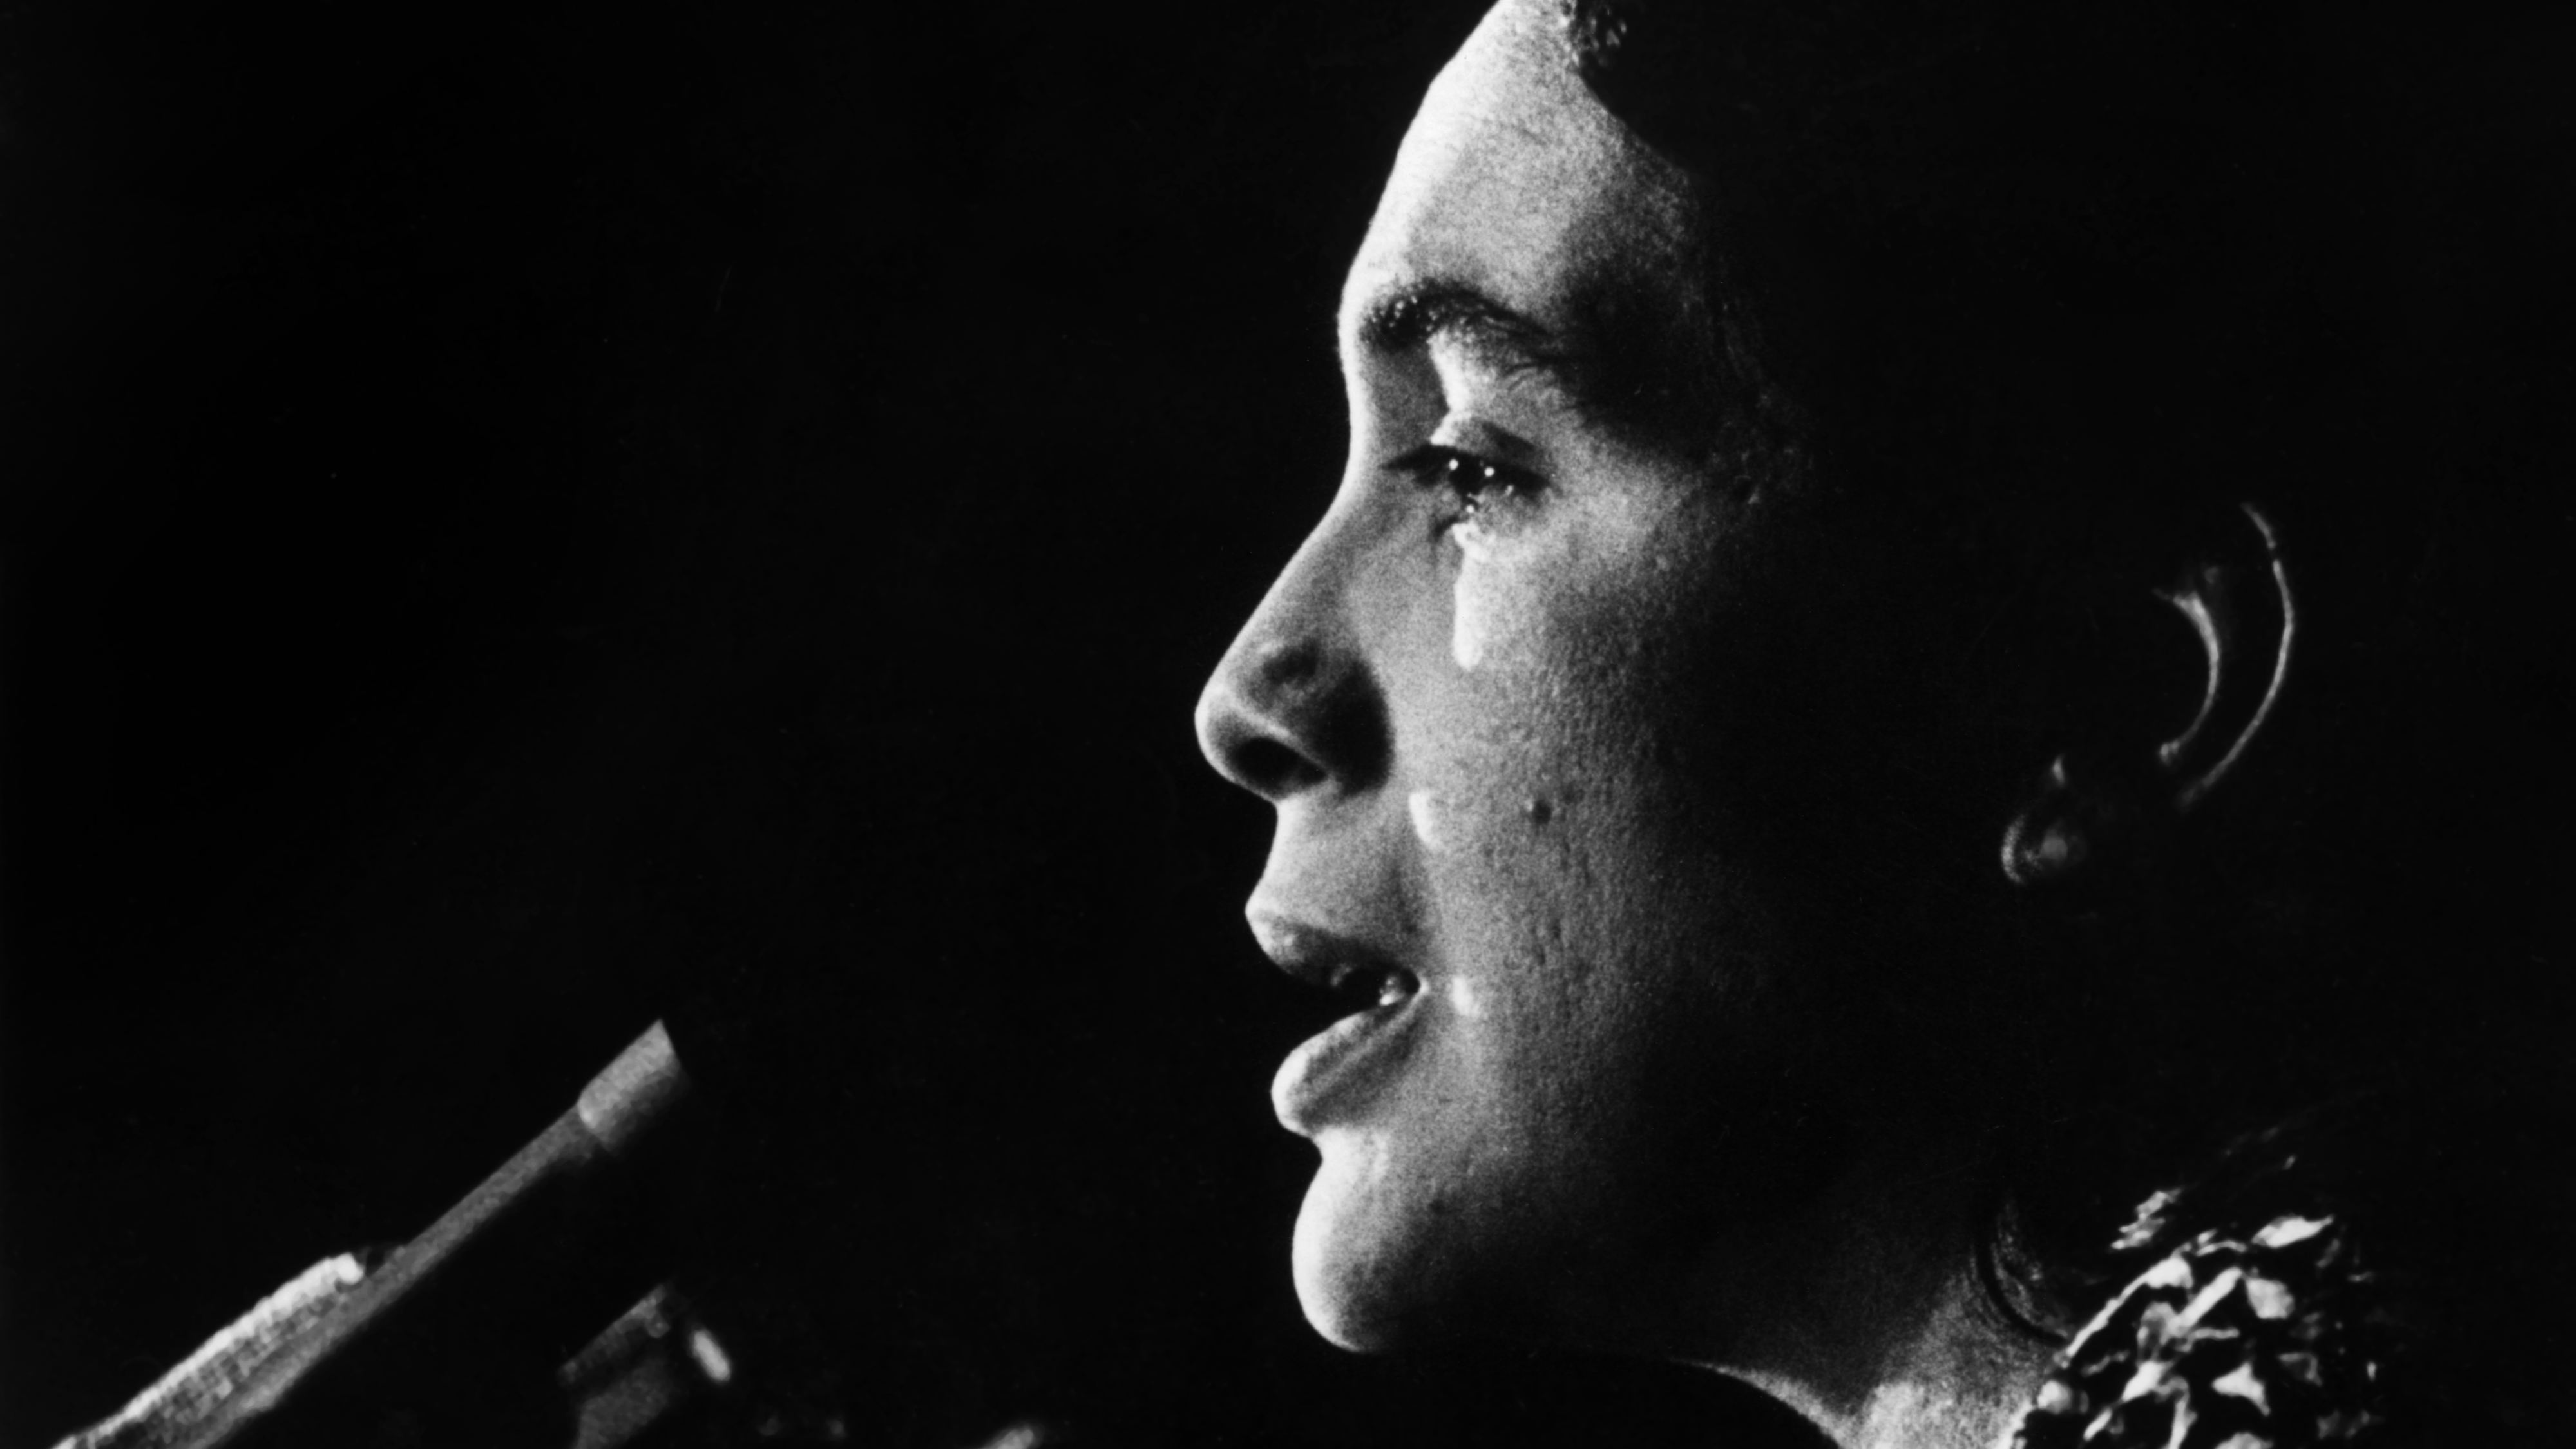 #4 - Dolores Huerta speaks at the podium. c1970s. Courtesy of Walter P. Reuther Library Archives of Labor and Urban Affairs Wayne State University